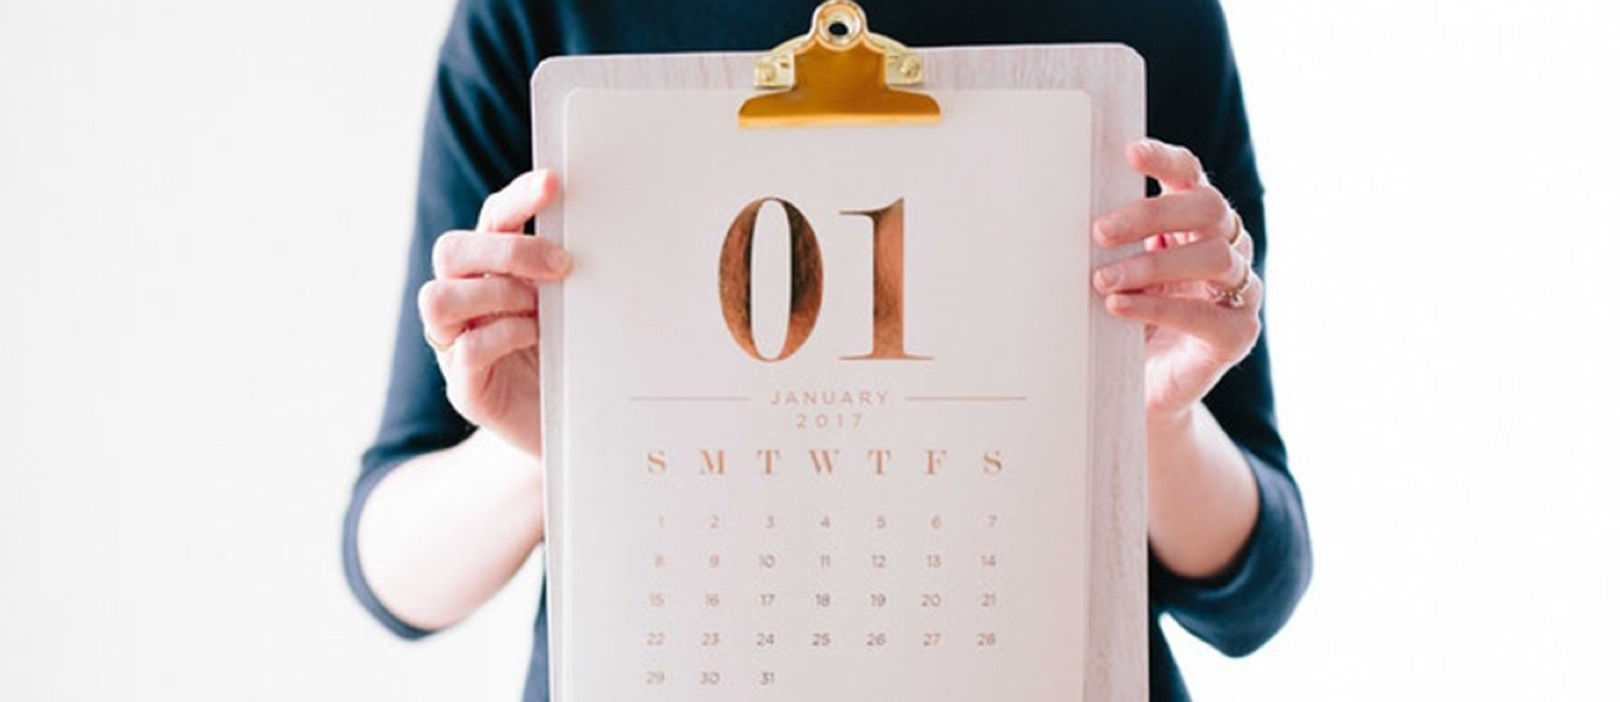 How to Automate Direct Mail Marketing in 2019 [New Year's Resolution]